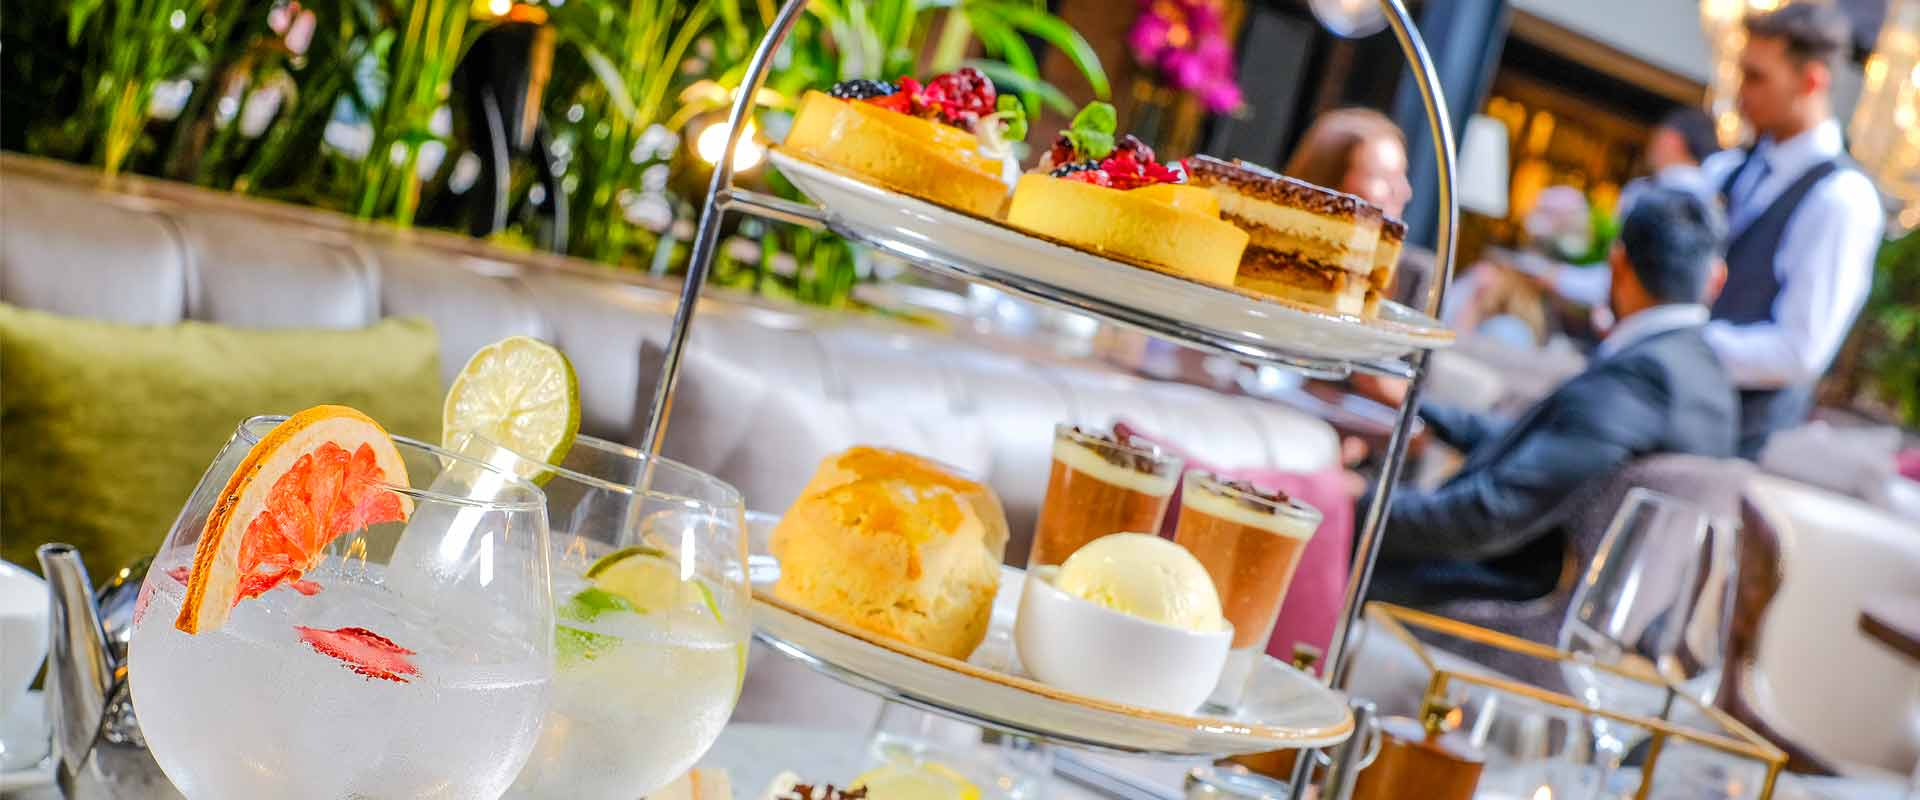 Afternoon Tea at the Grosvenor Pulford Hotel and Spa